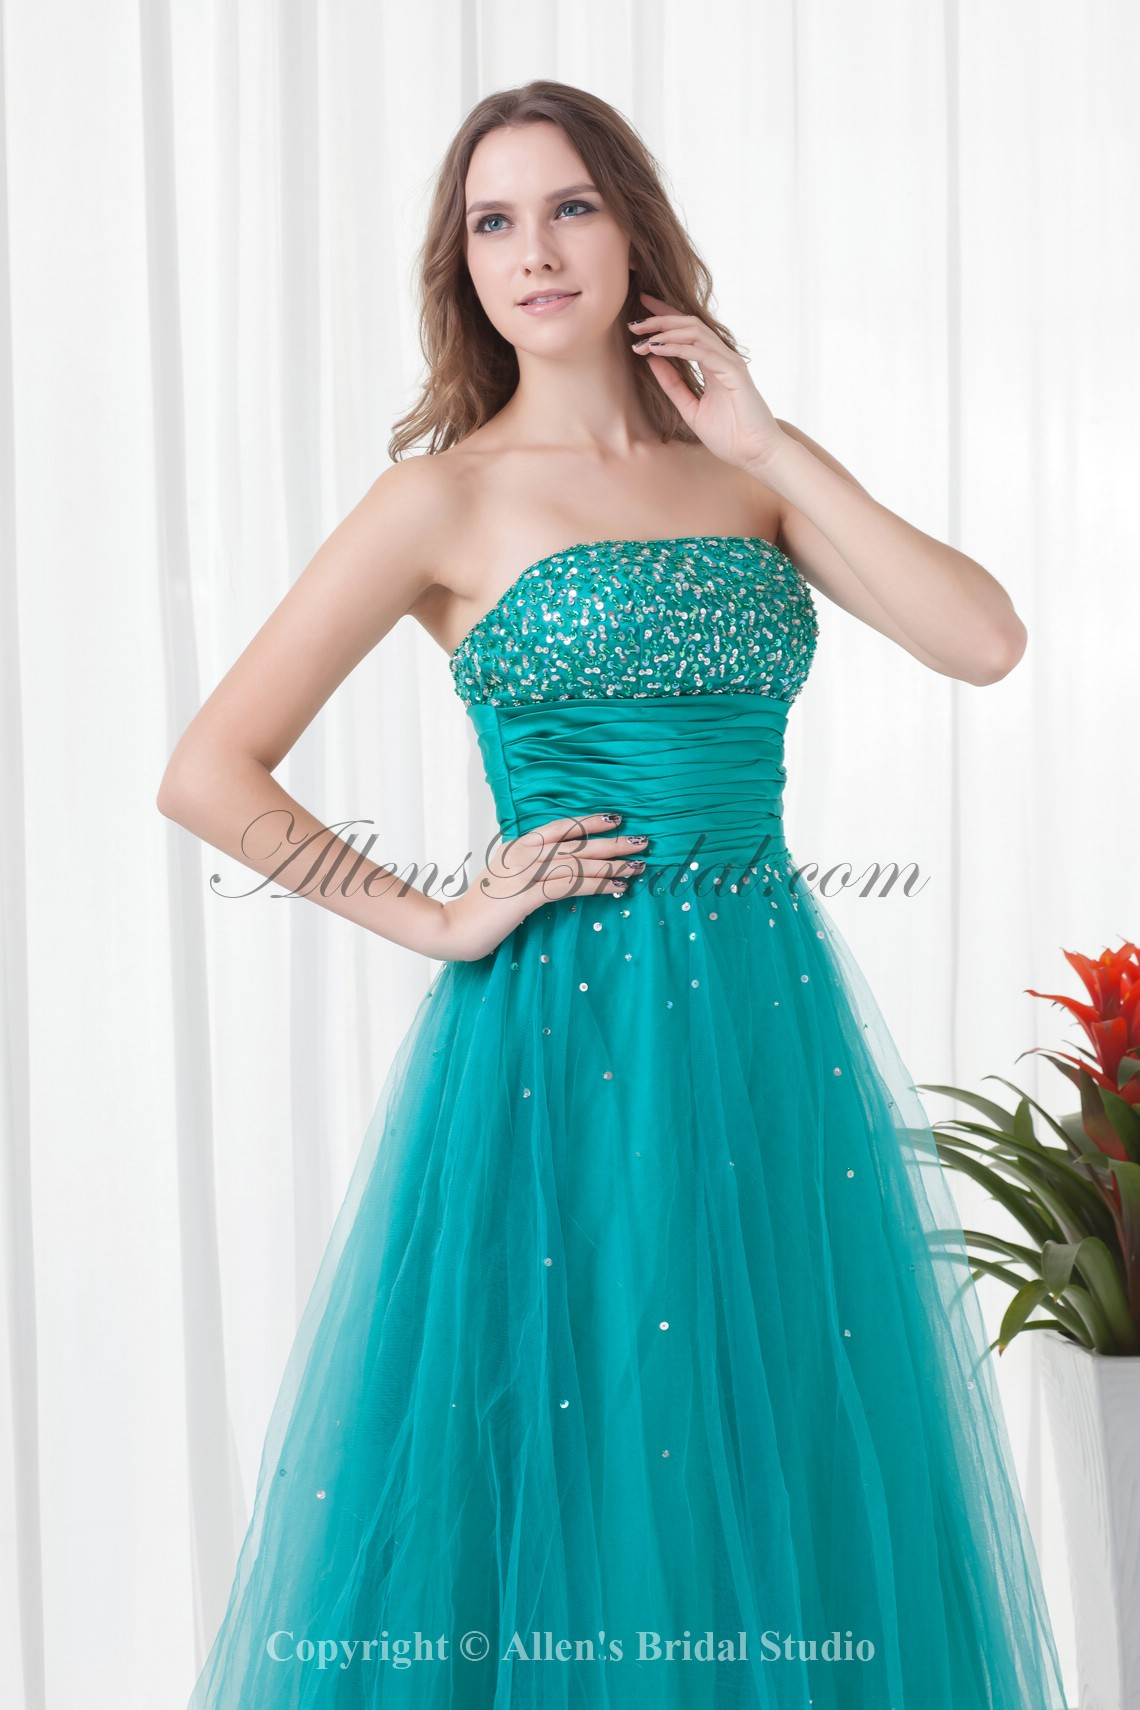 /323-2584/satin-and-net-strapless-a-line-floor-length-sequins-prom-dress.jpg